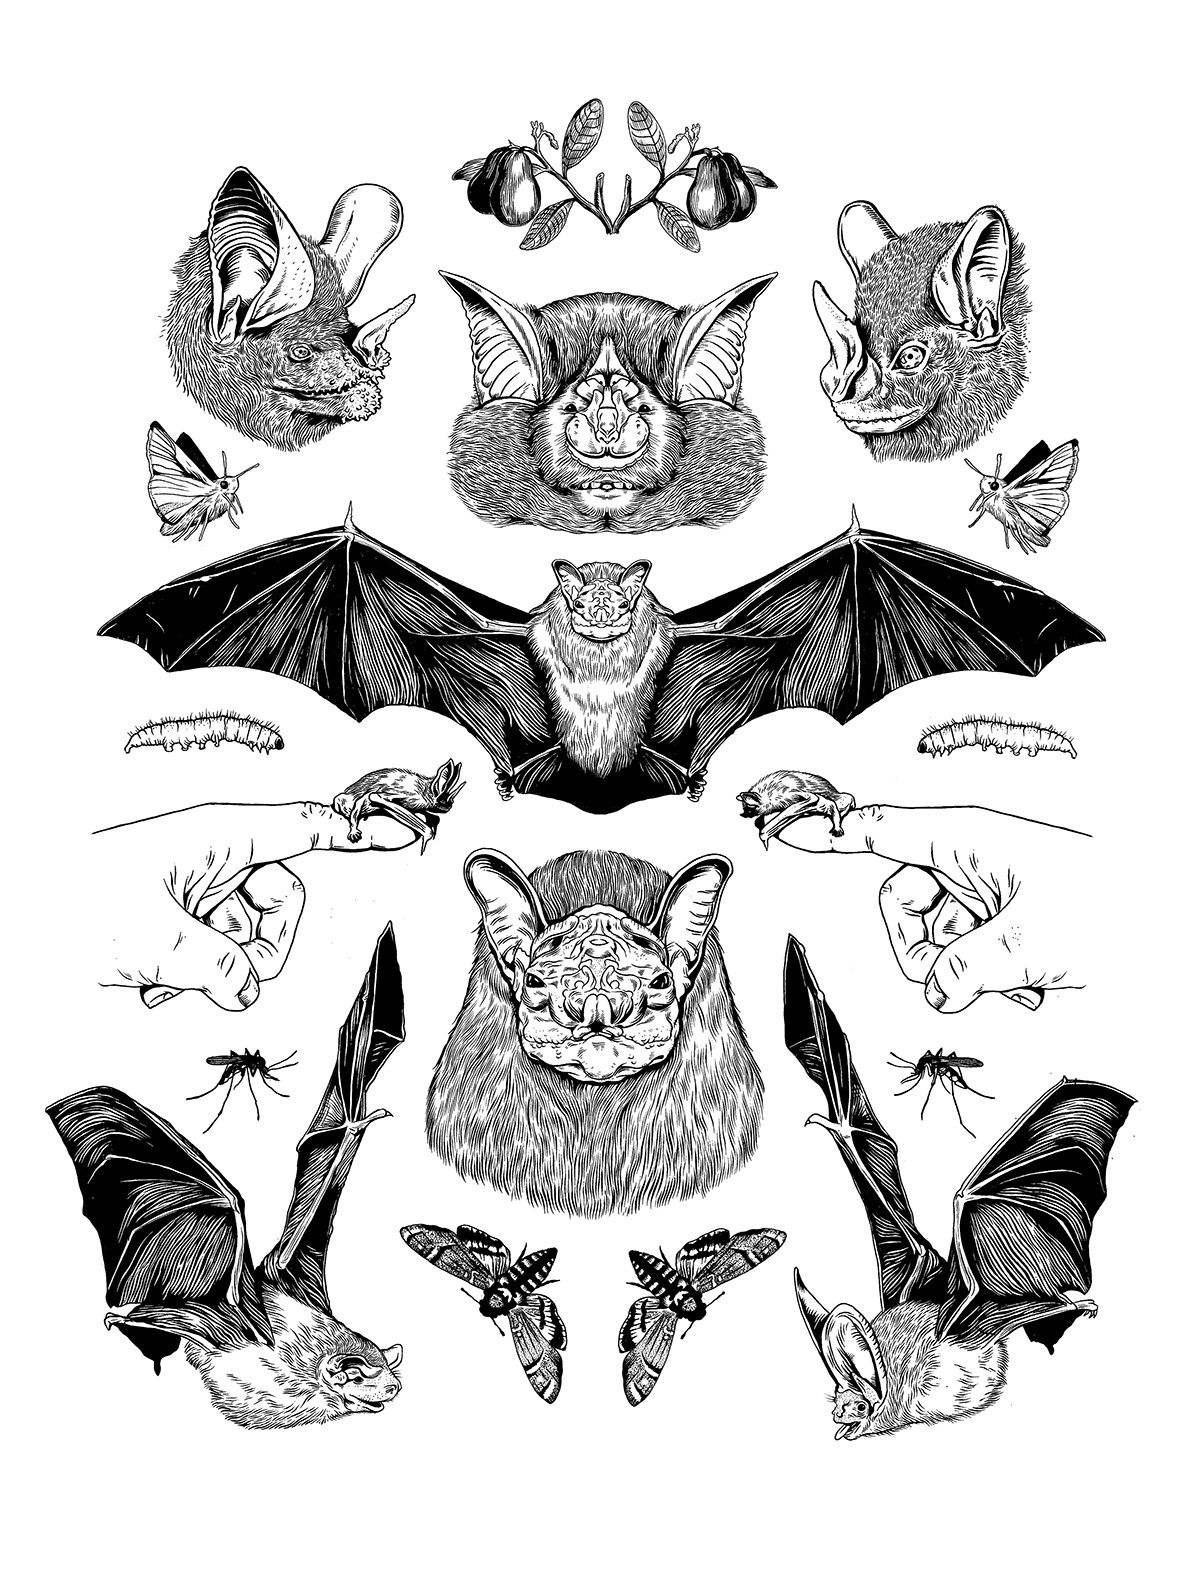 Fledermaus Tattoos Louise Pomeroy Tattoos And Art Fledermaus Tattoo Tattoo Ideen